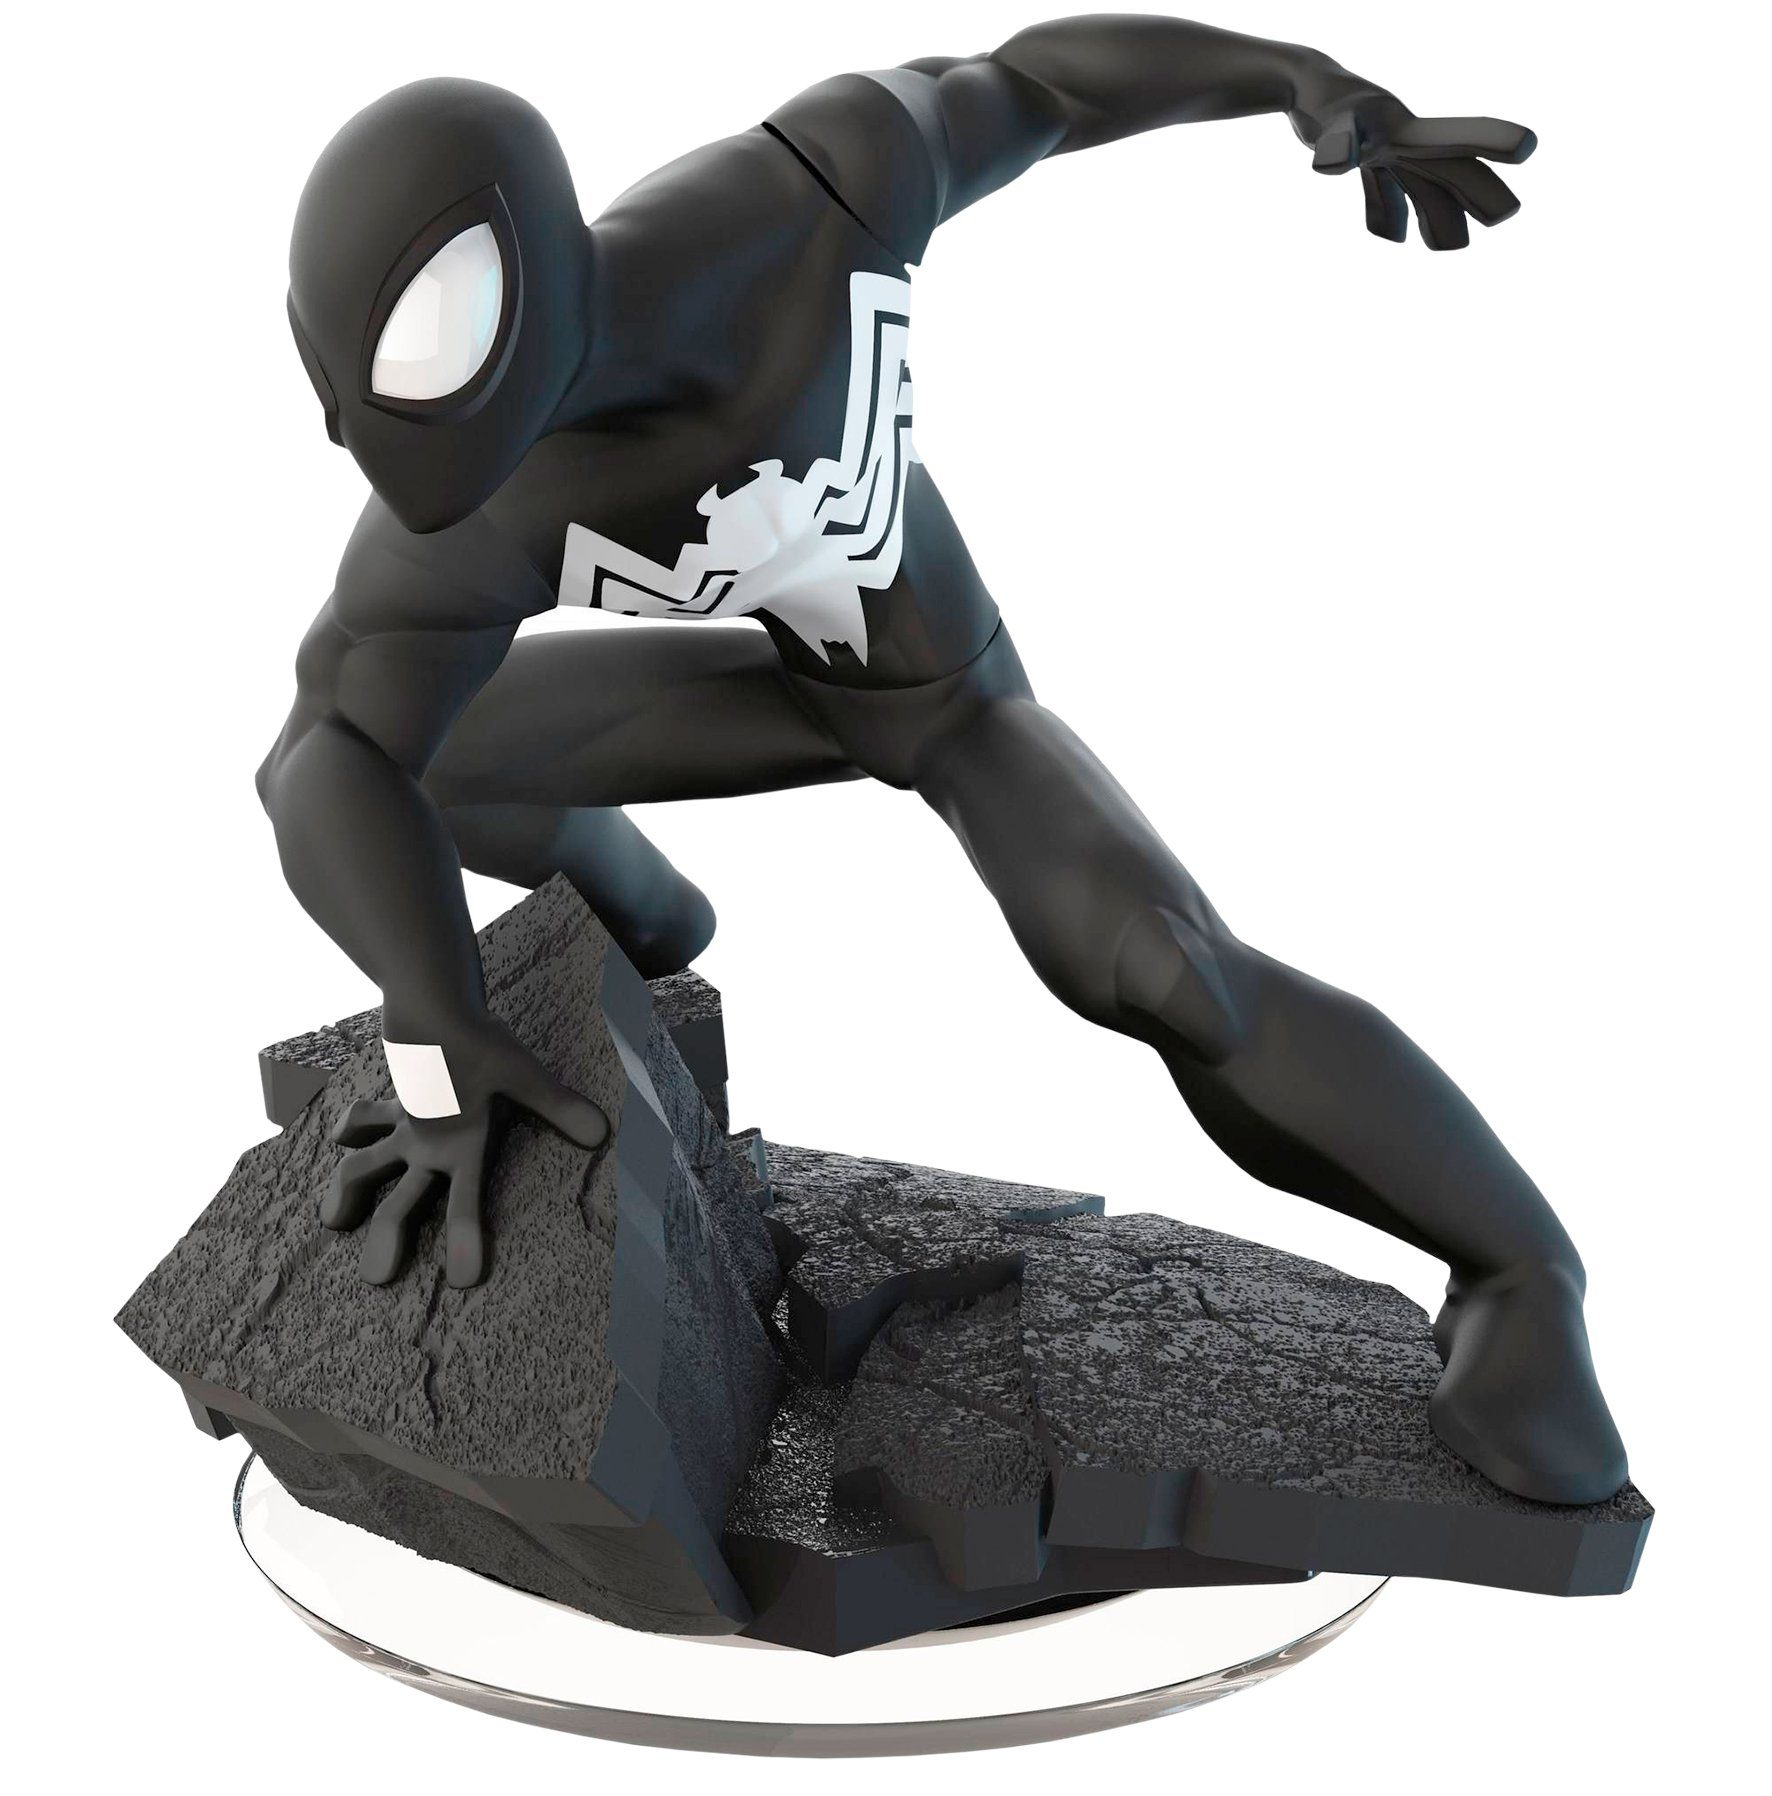 DISNEY Infinity 3.0 »Einzelfigur Black Spiderman«